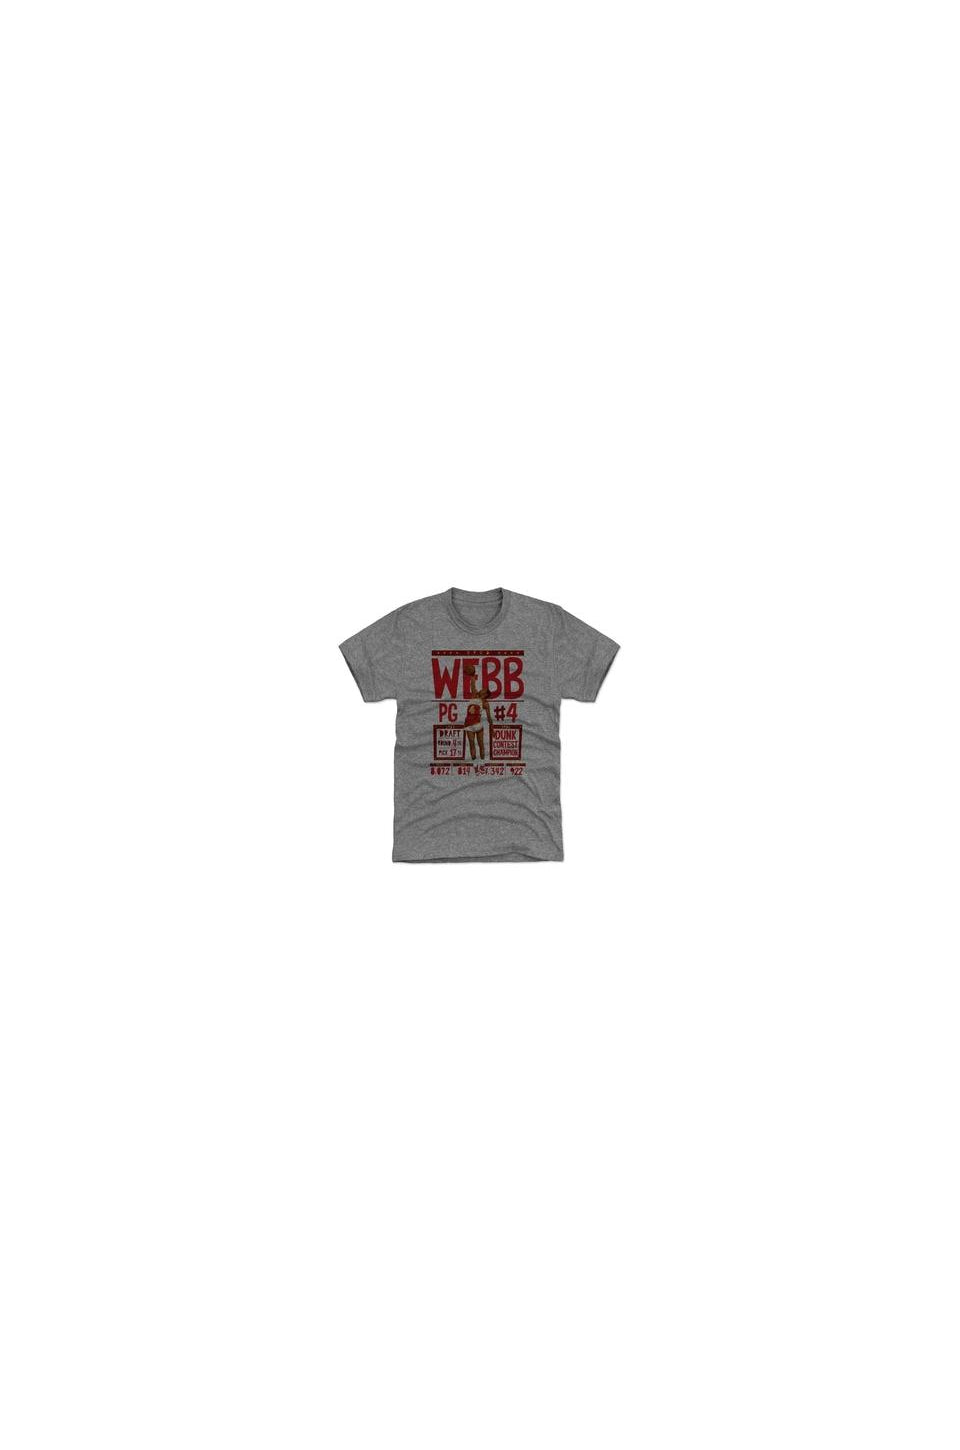 Spud Webb Stats Premium Basketball T-Shirt In Tri Grey